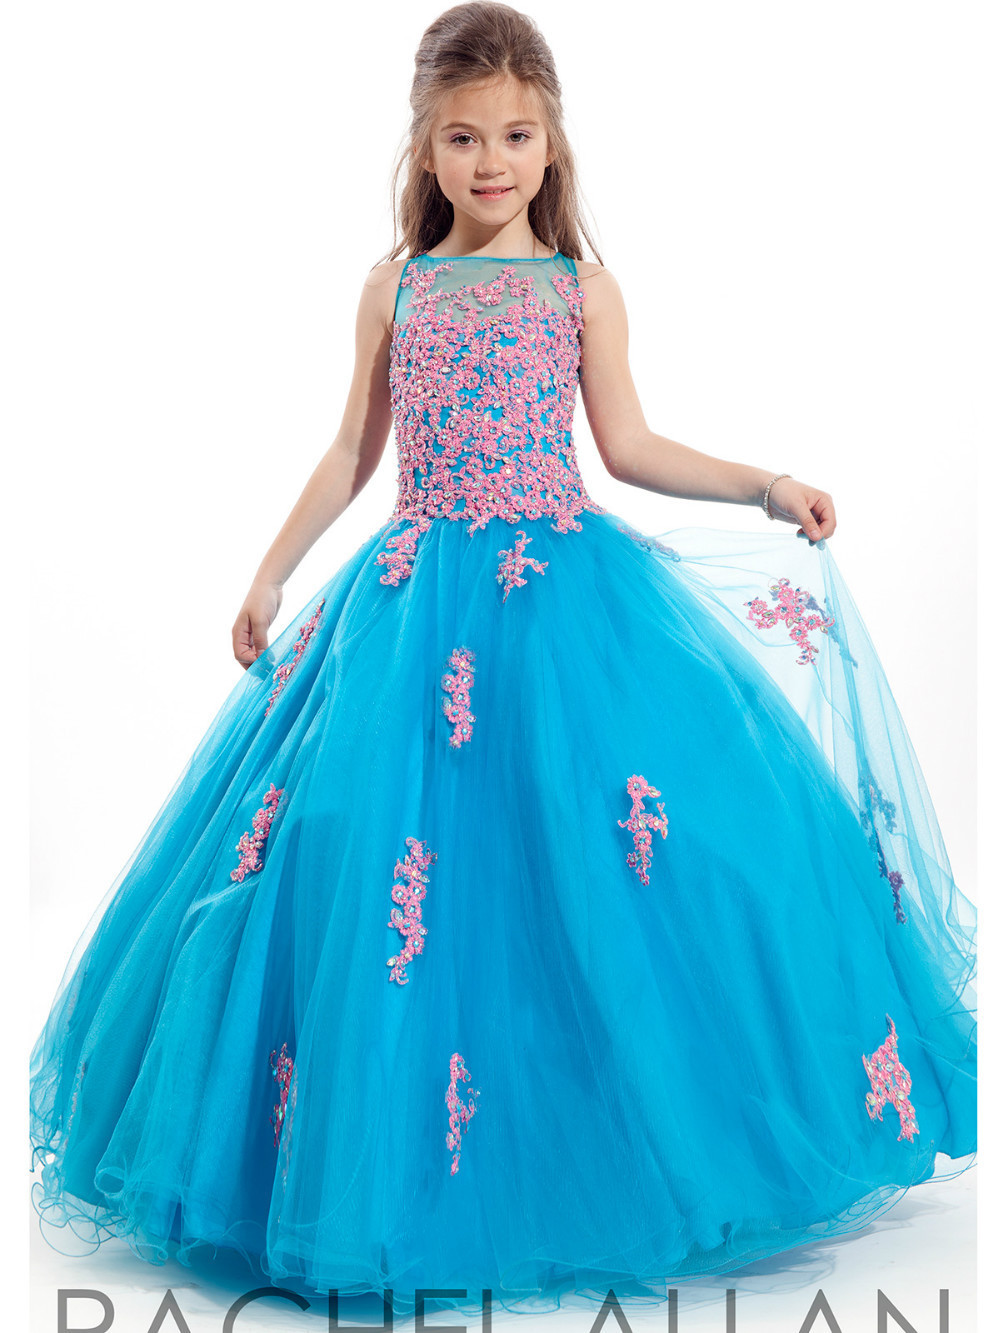 2016 Girls Pageant Dresses Ball Gown Turquoise Beaded Blue